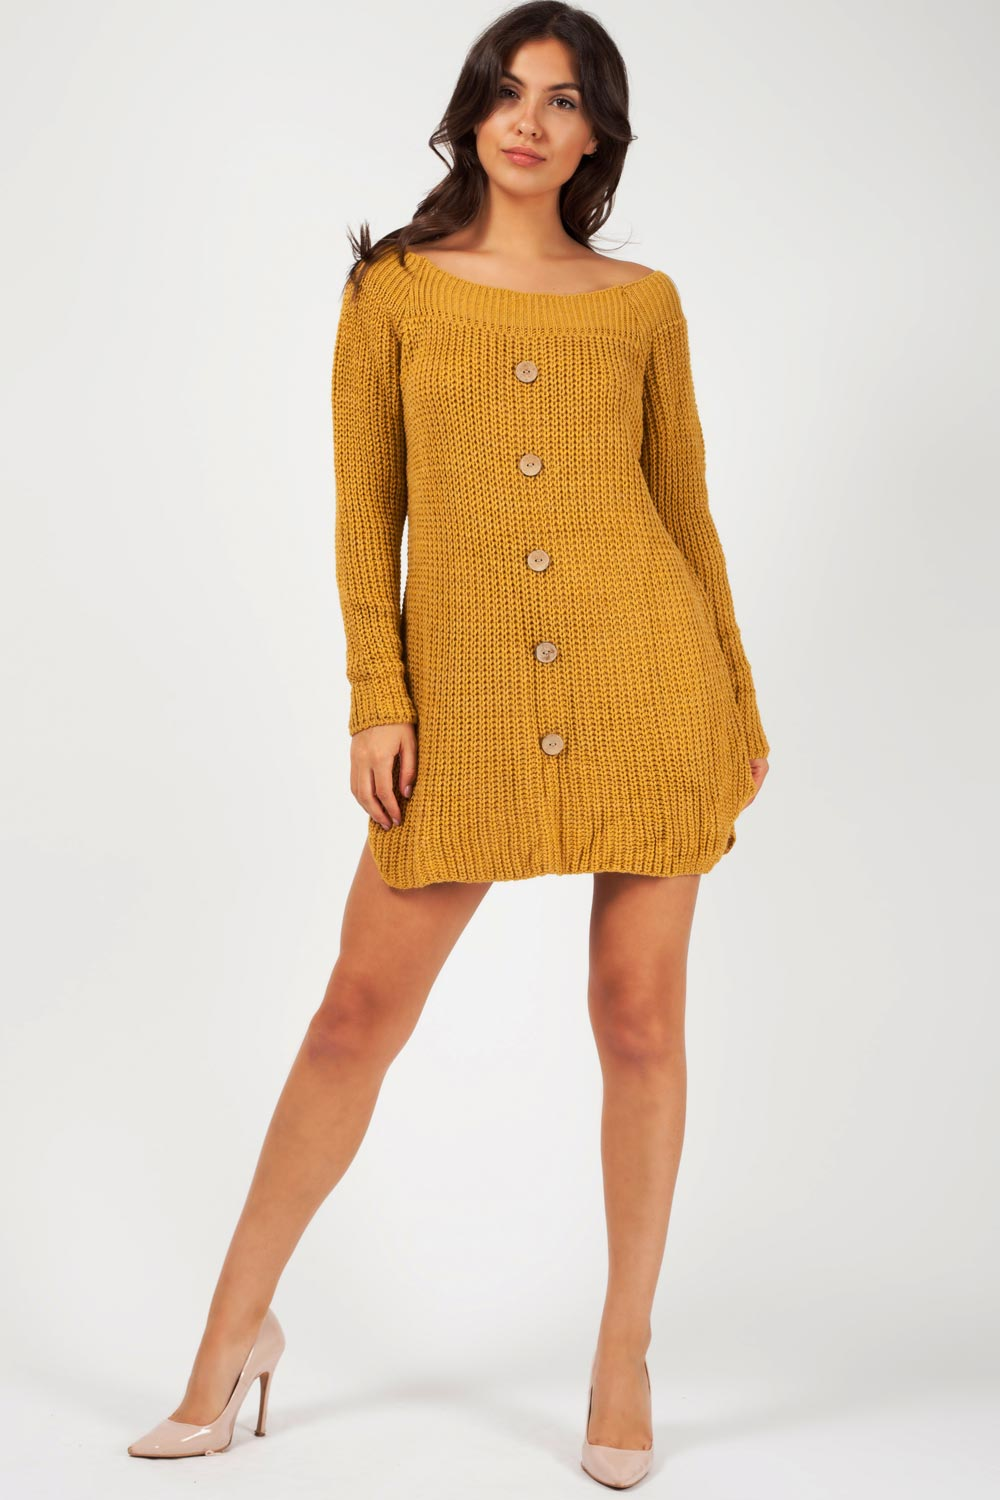 mustard long sleeve jumper dress